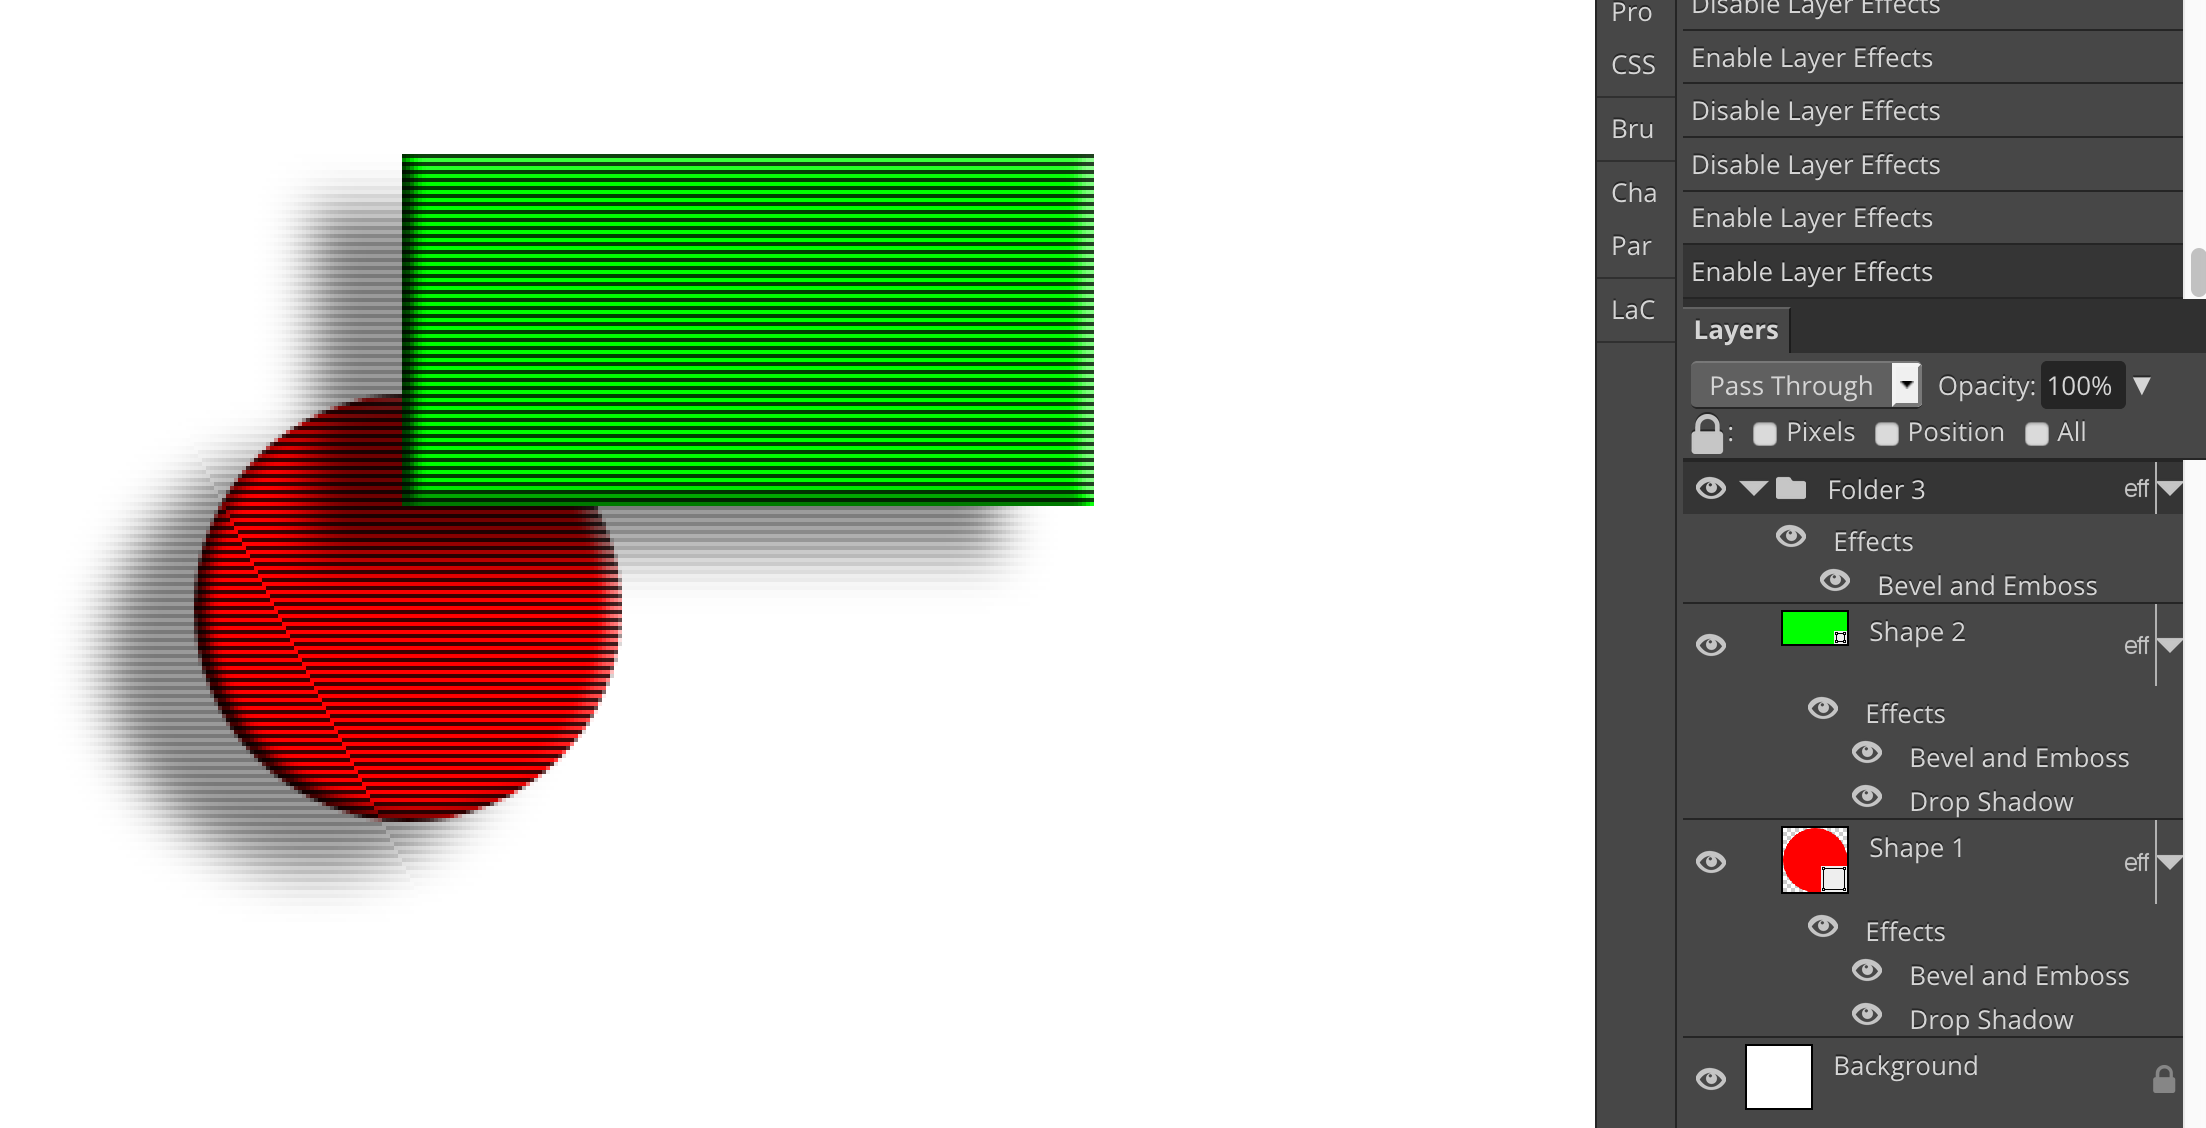 BUG in rendering effects using layer style on folder · Issue